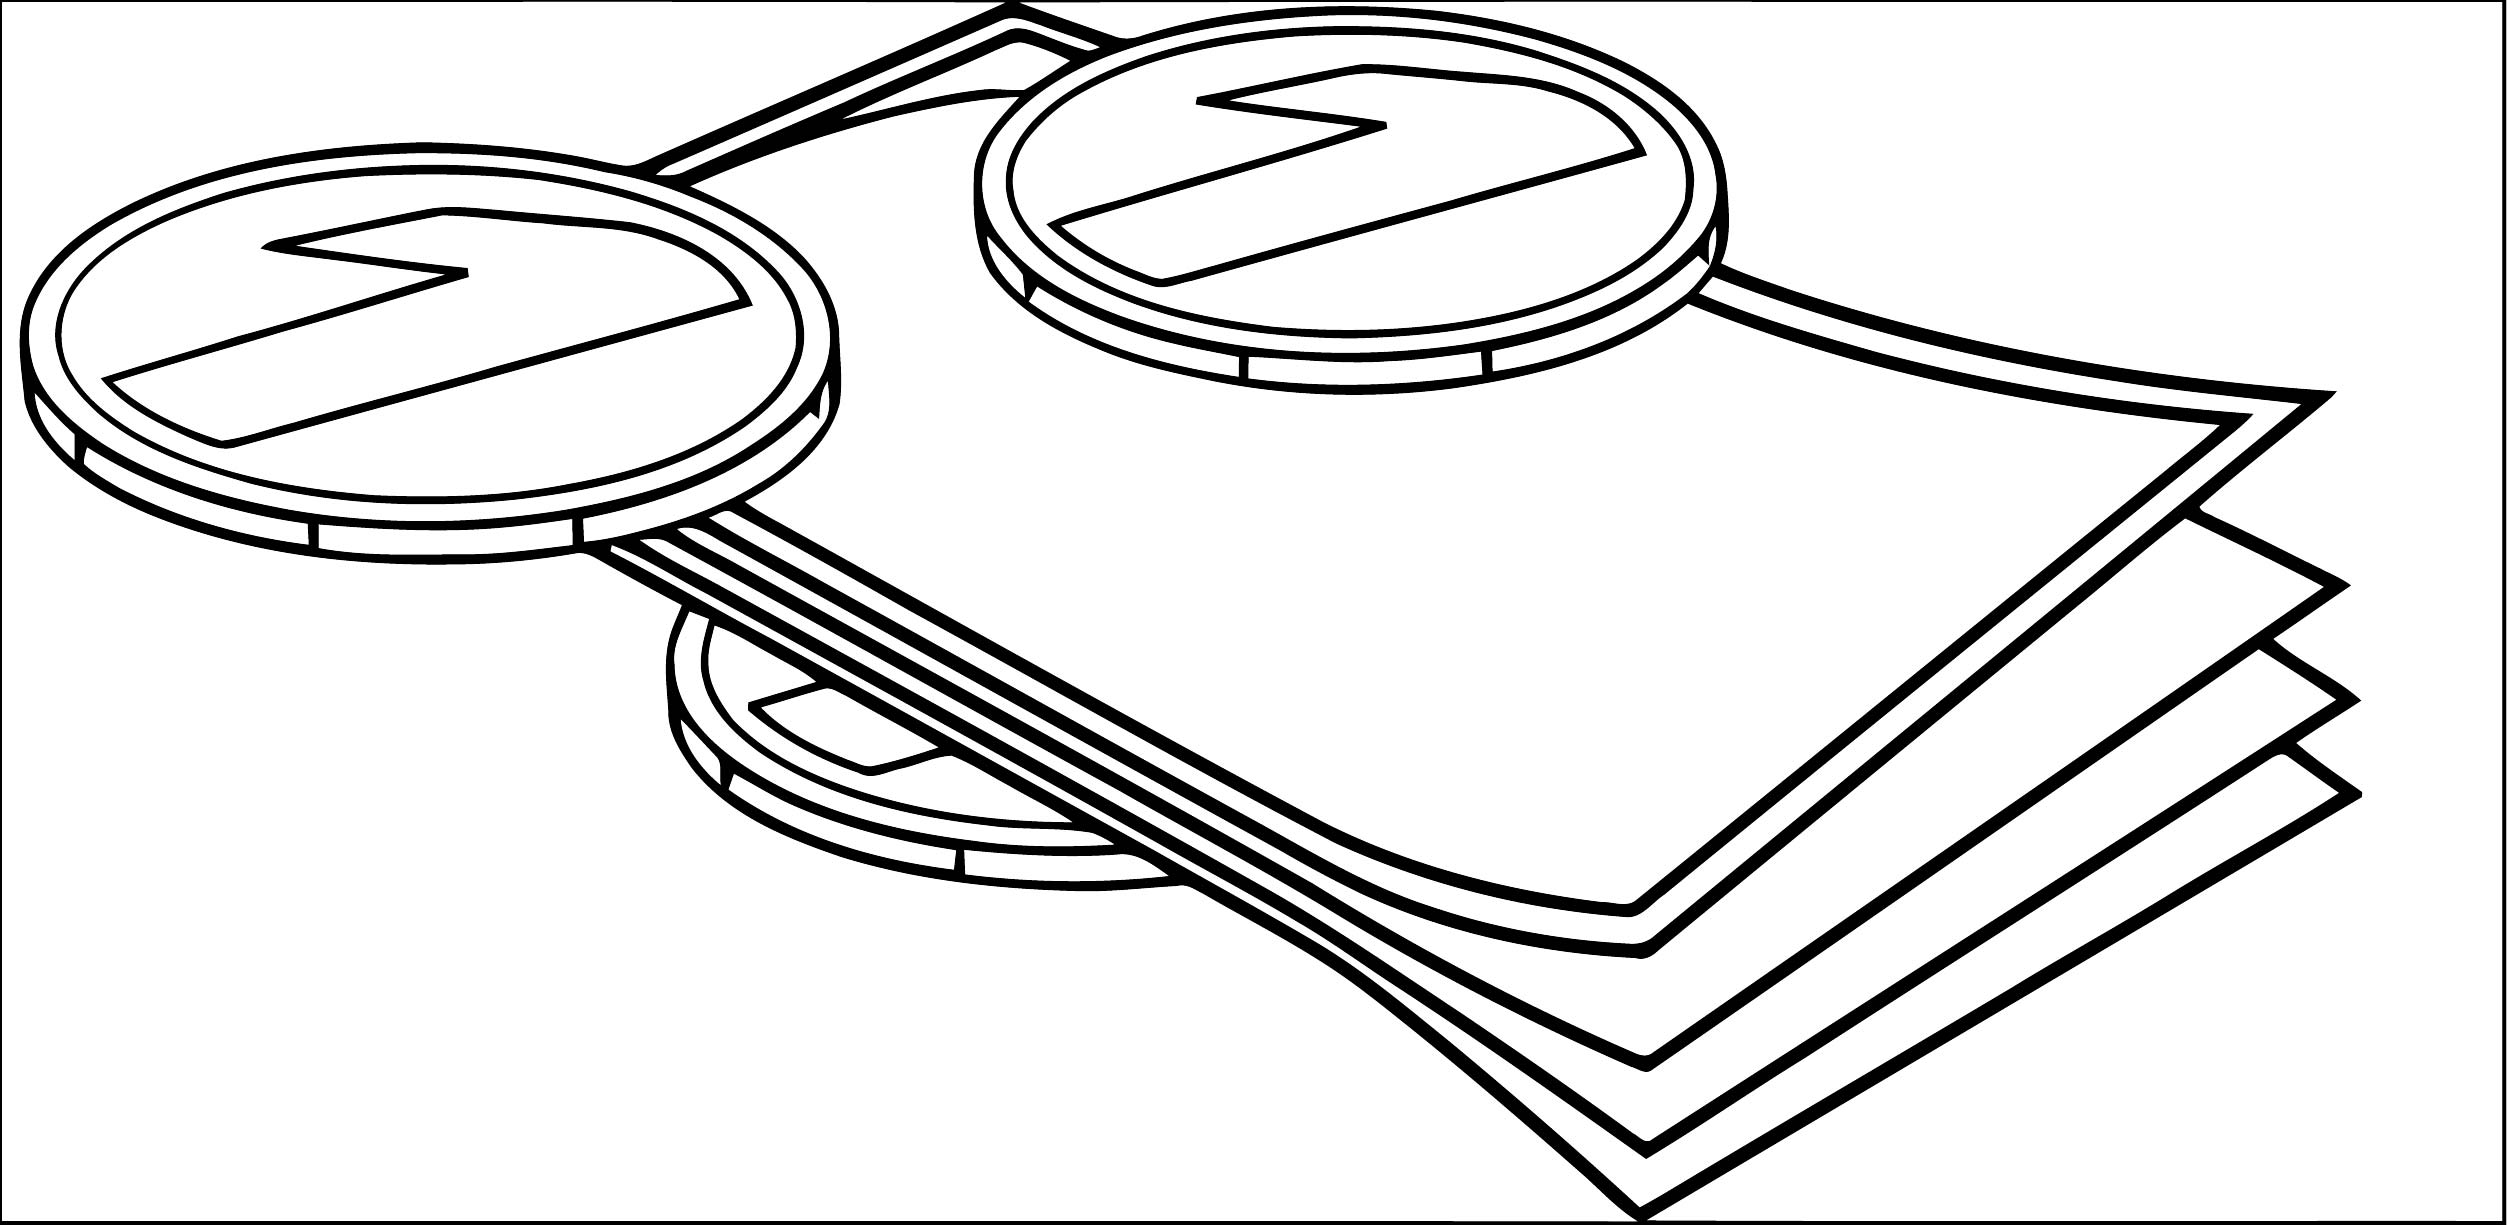 Notes Free Money Money Coloring Page